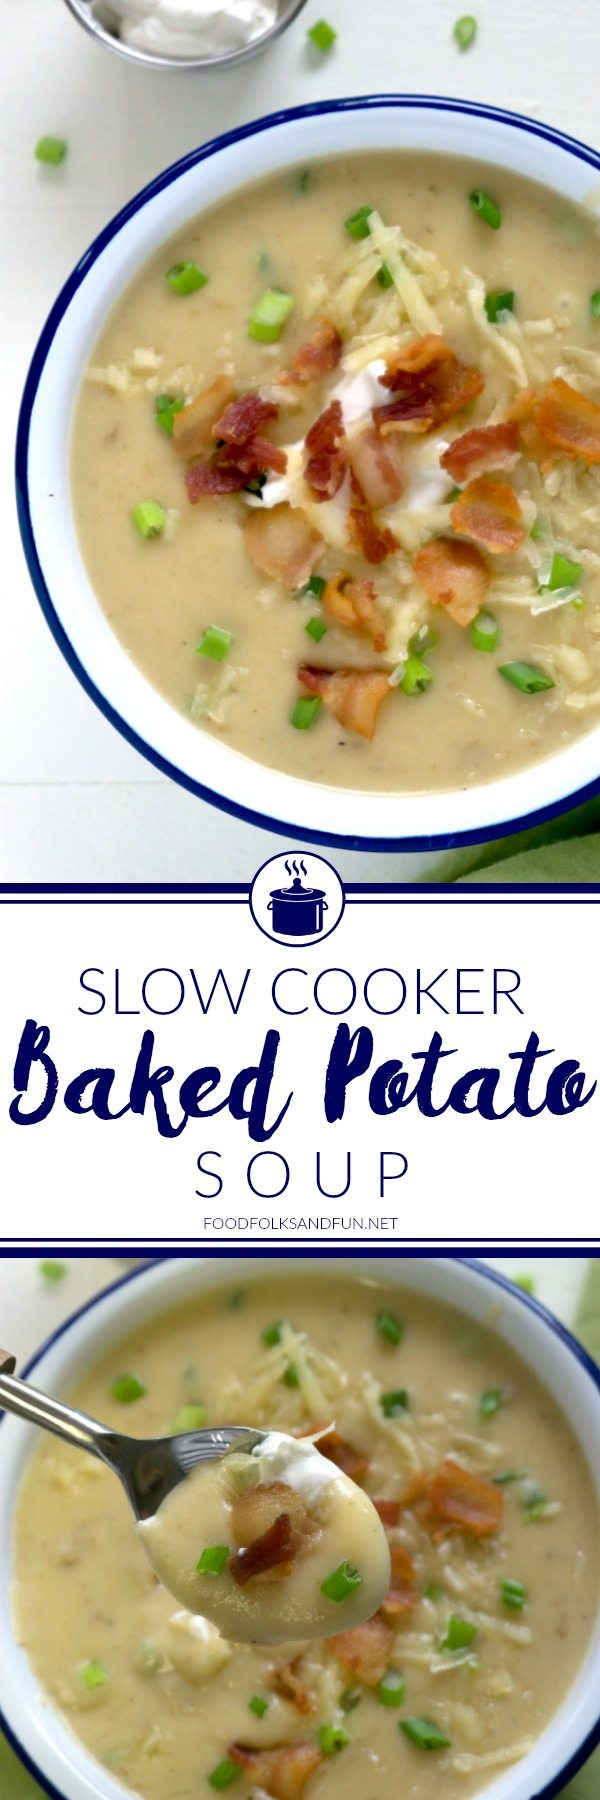 This Slow Cooker Loaded Baked Potato Soup is a winter classic. It's some serious comfort food, and perfect for busy weeknights.